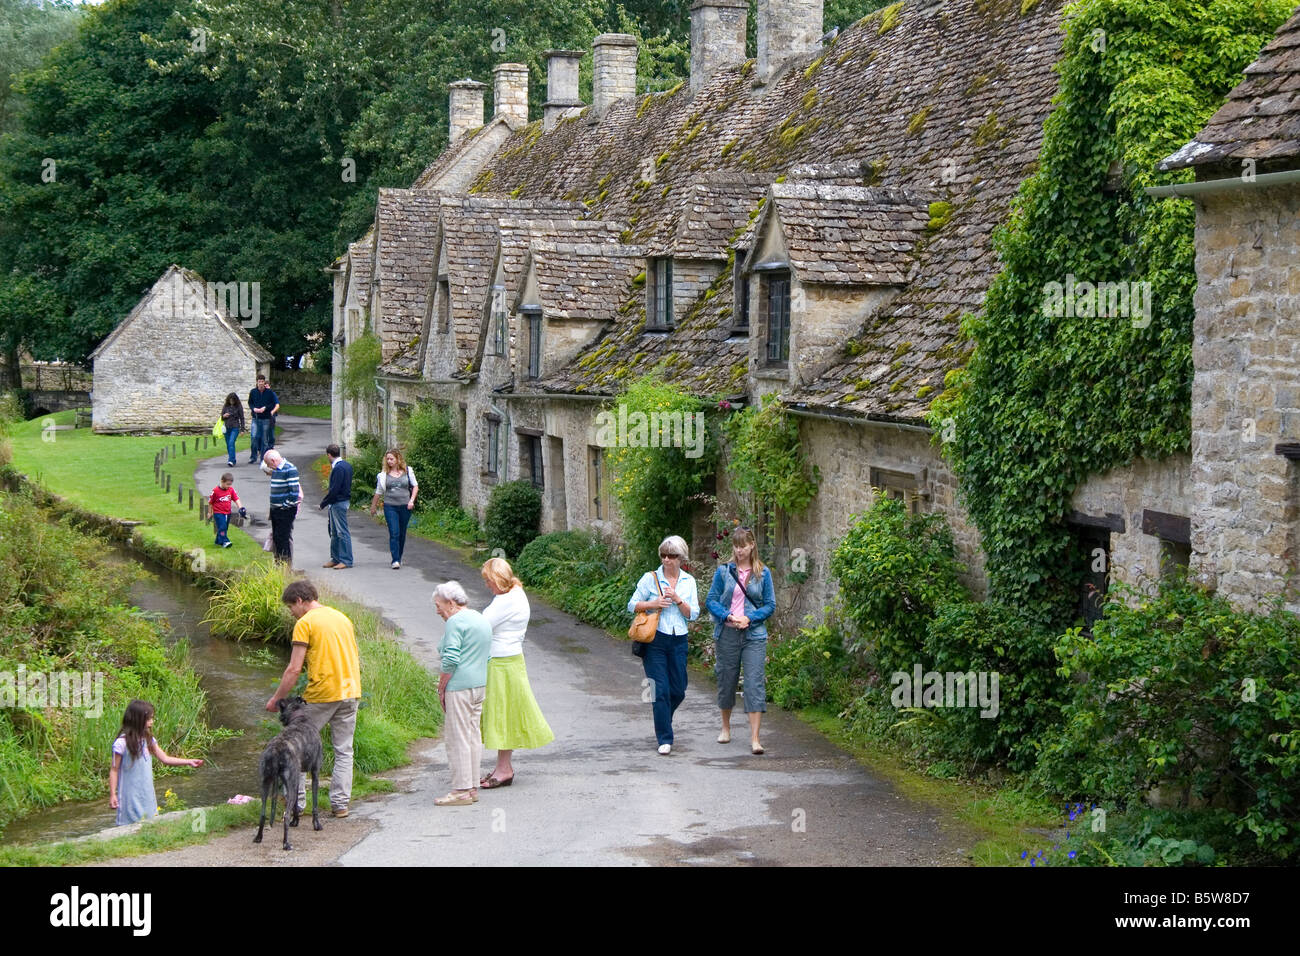 Cotswold Stone Cottages In The Village Of Bibury